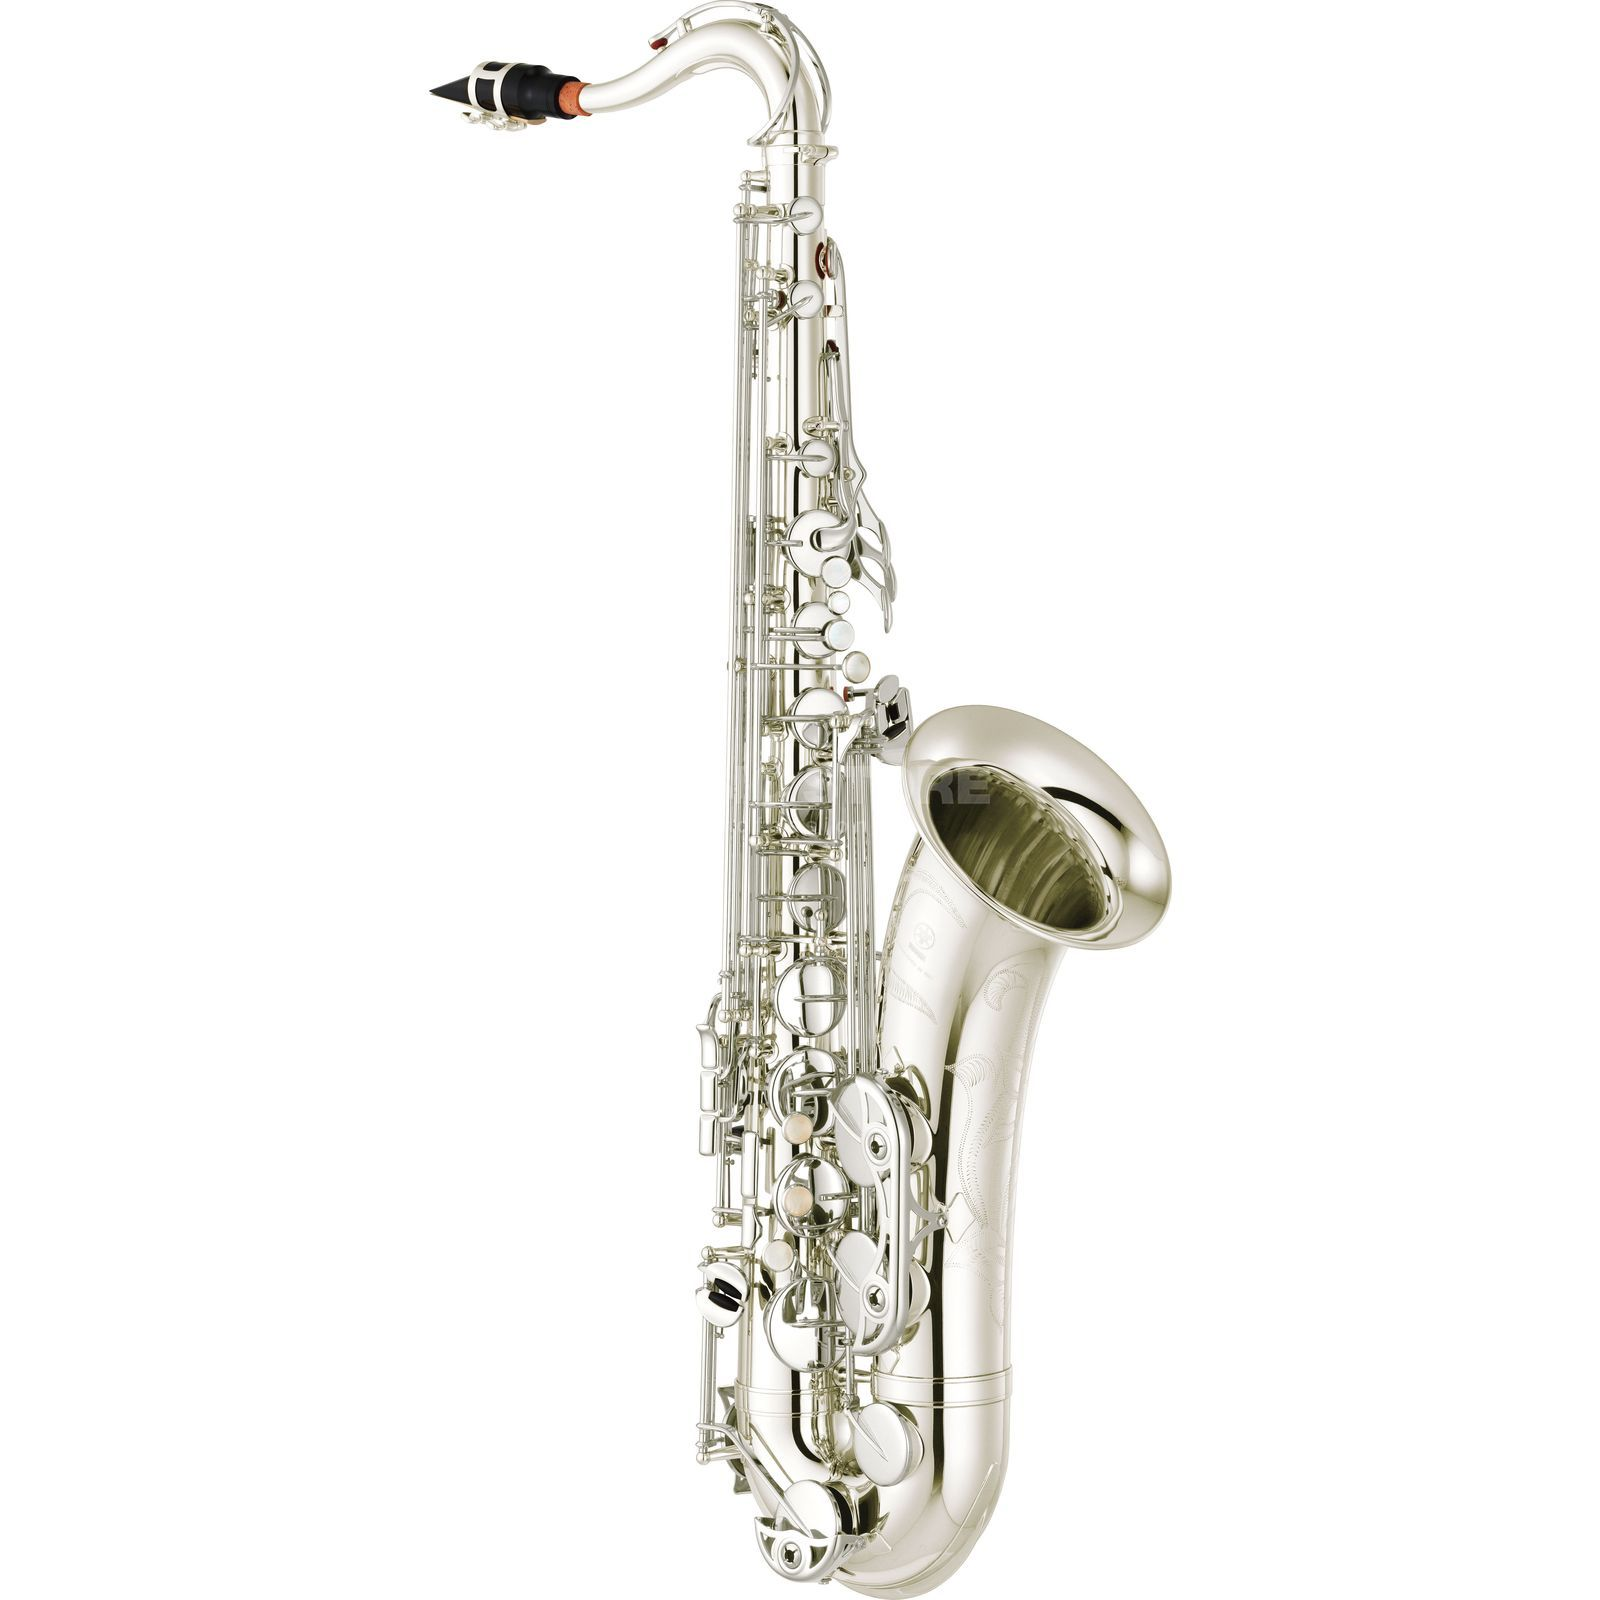 Yamaha YTS-480 S Tenor Saxophone Silver Plated Product Image